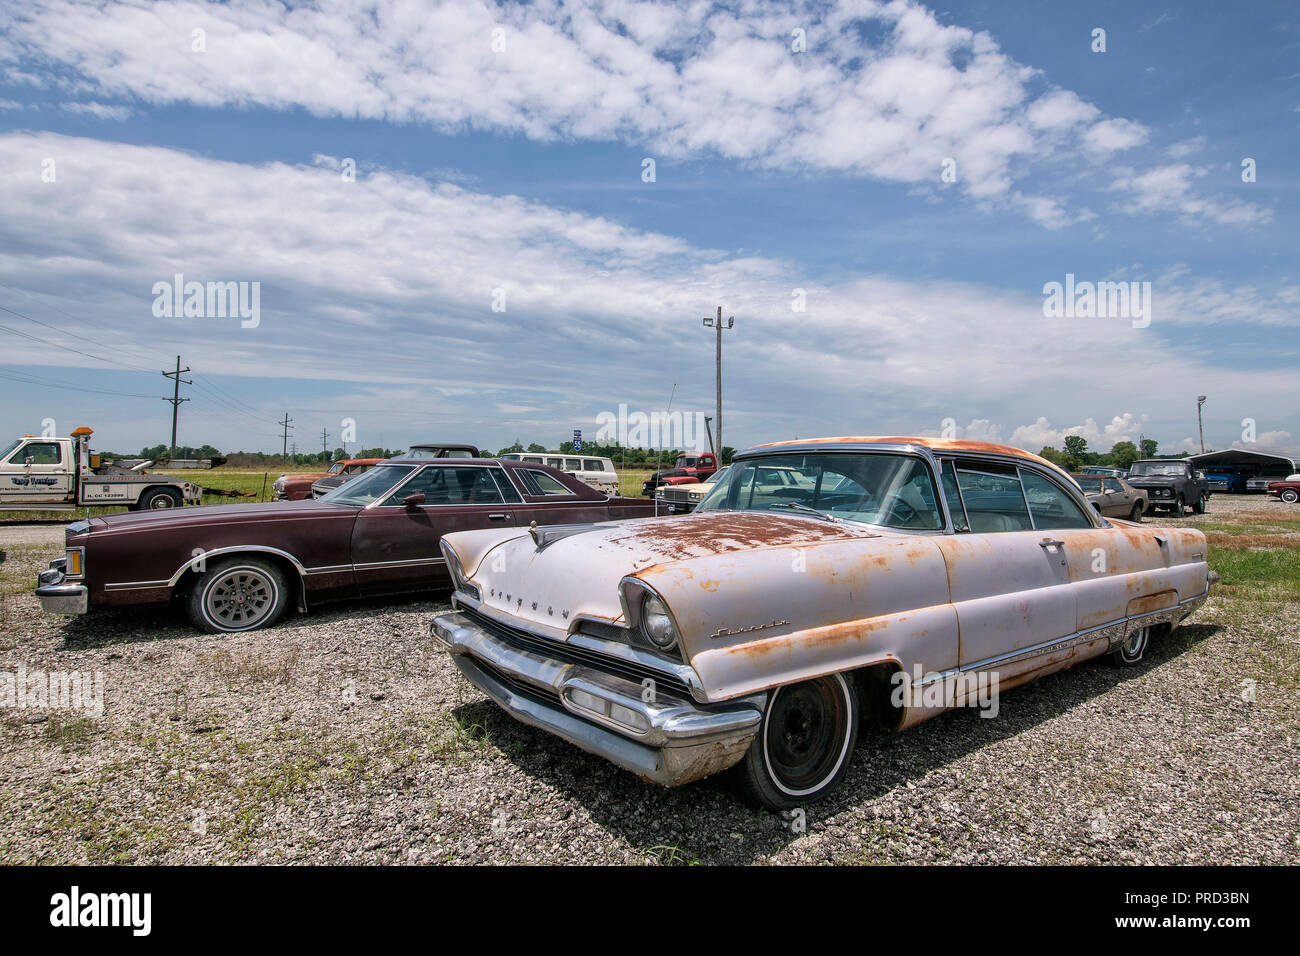 Classic Lincoln Im Country Classic Cars Gmbh Autohaus Auf Der